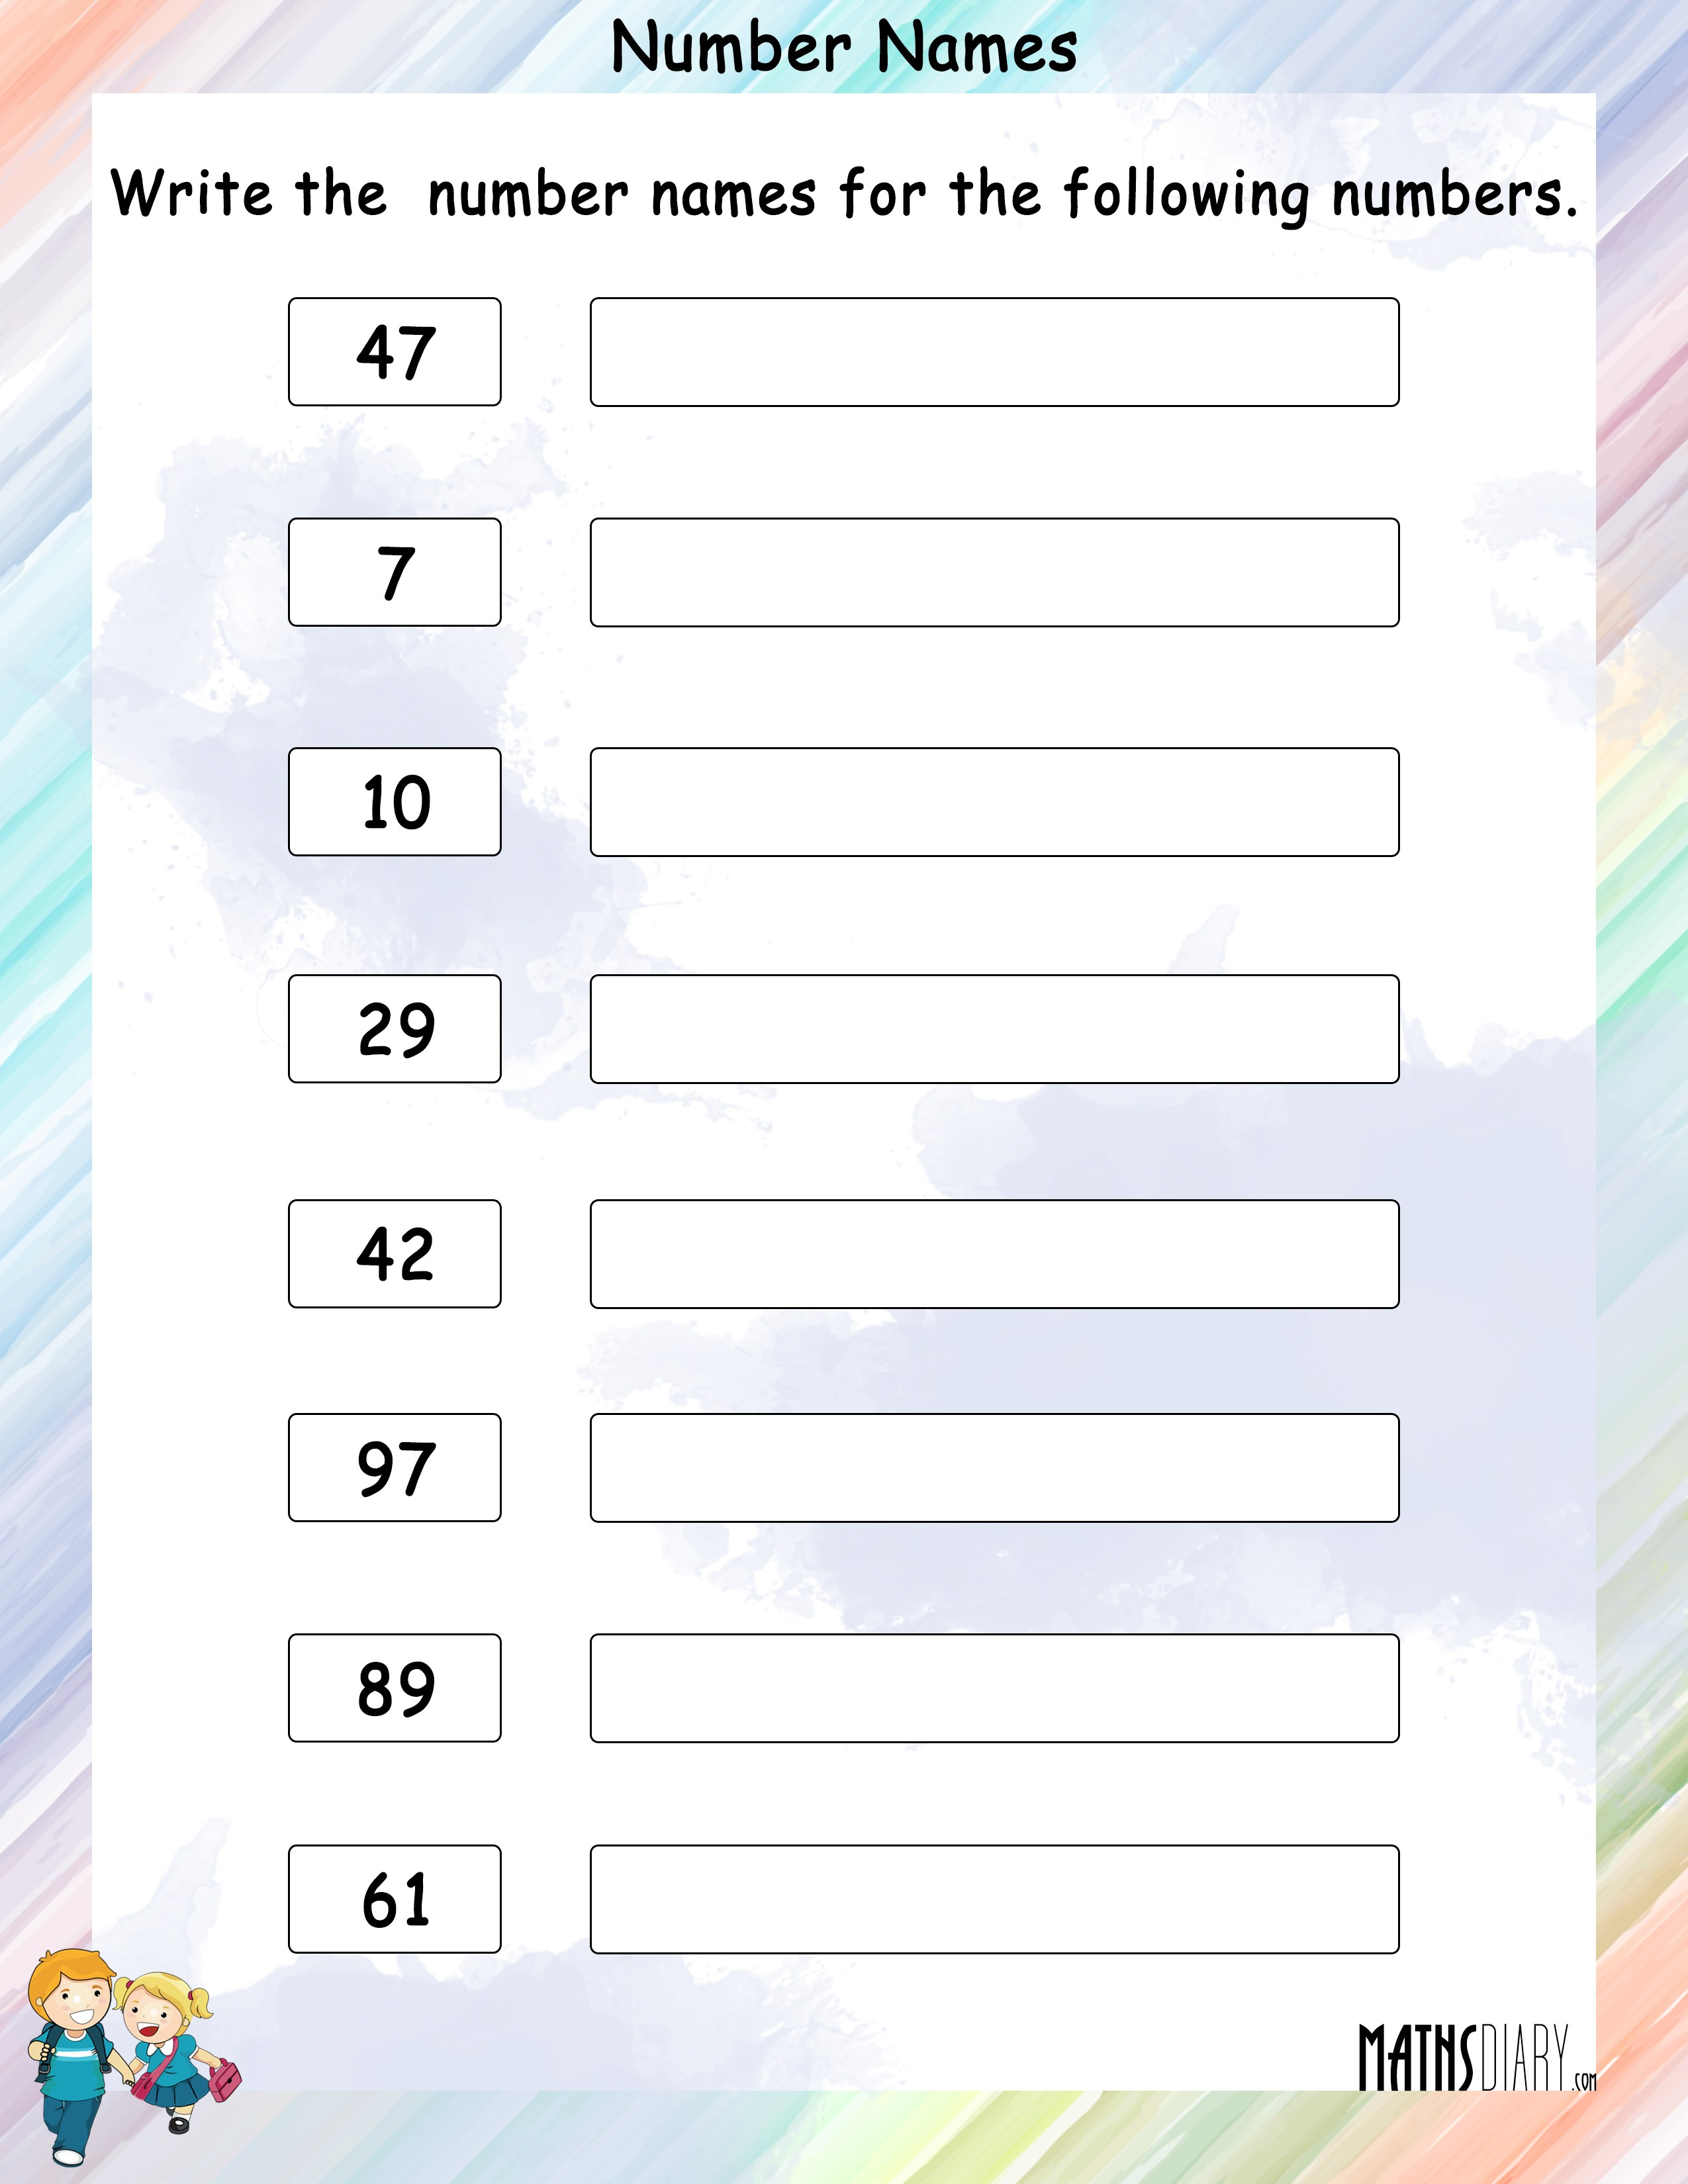 Write Number Names For Given Numbers